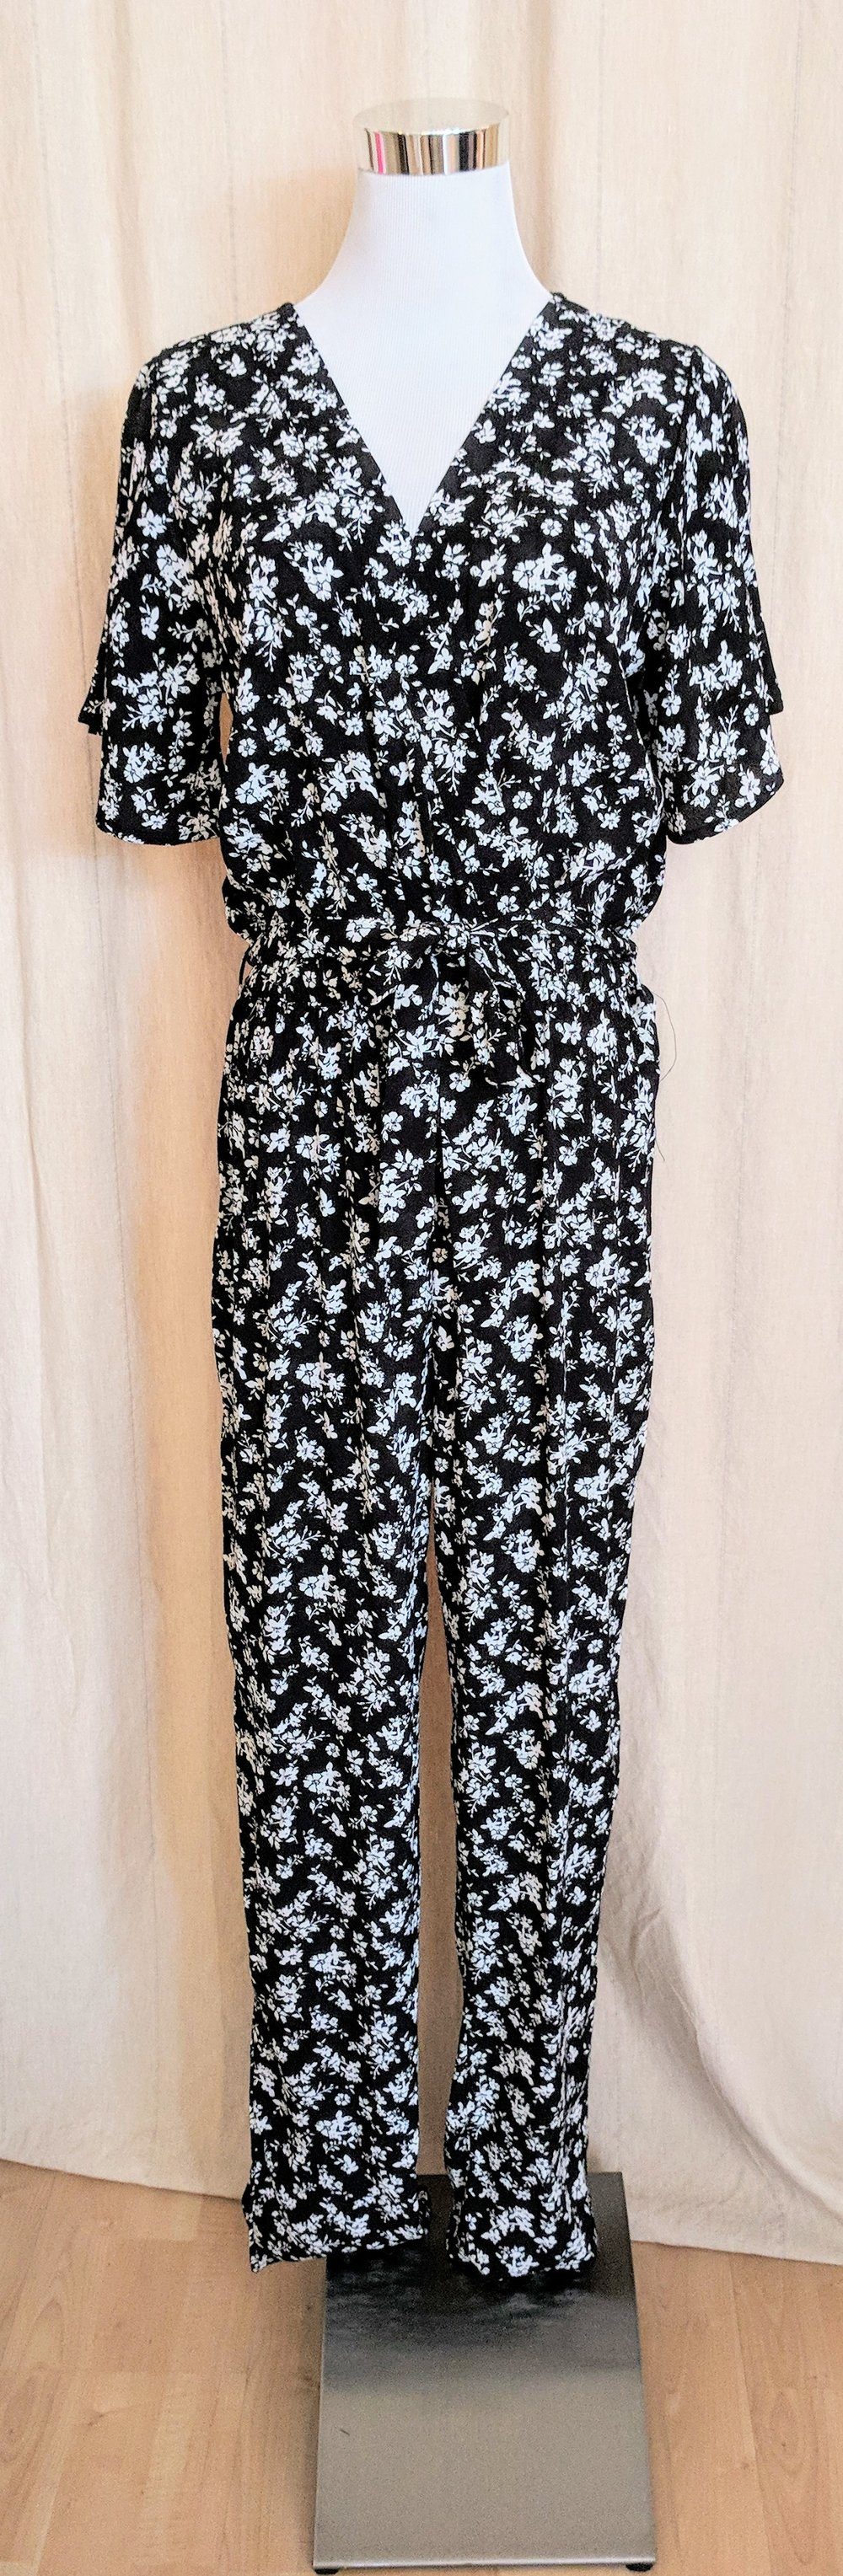 Black and Ivory floral jumpsuit with waist tie detail.